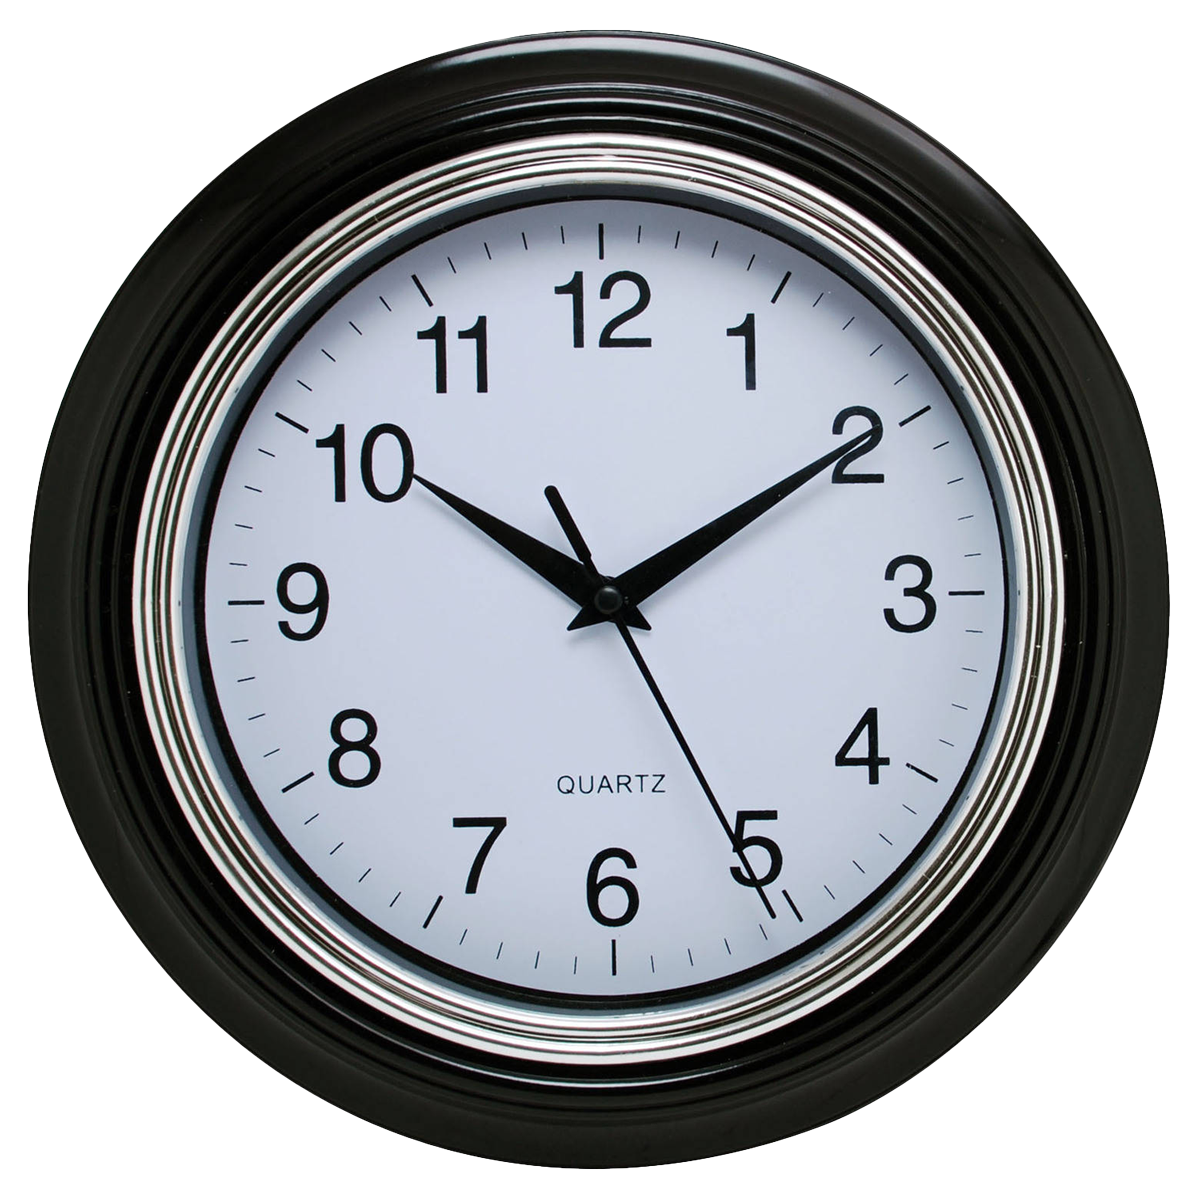 Black Wall Clock PNG Image - Clock PNG